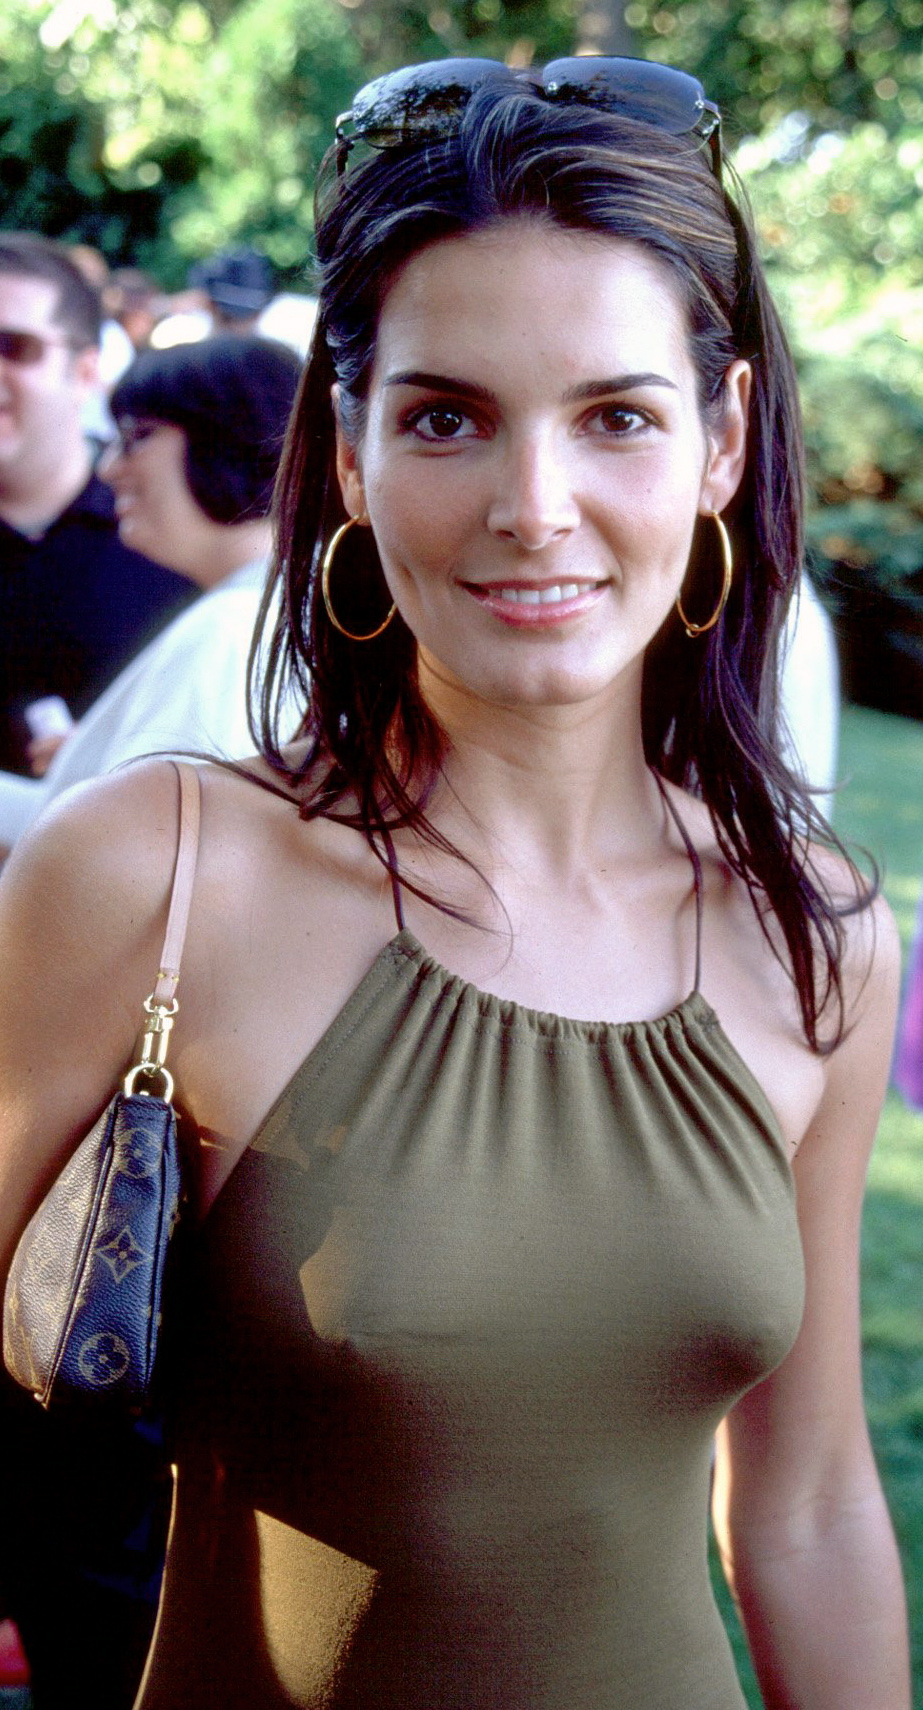 Angie Harmon Nuda angie harmon nude. angie harmon fakes – http://www.pae